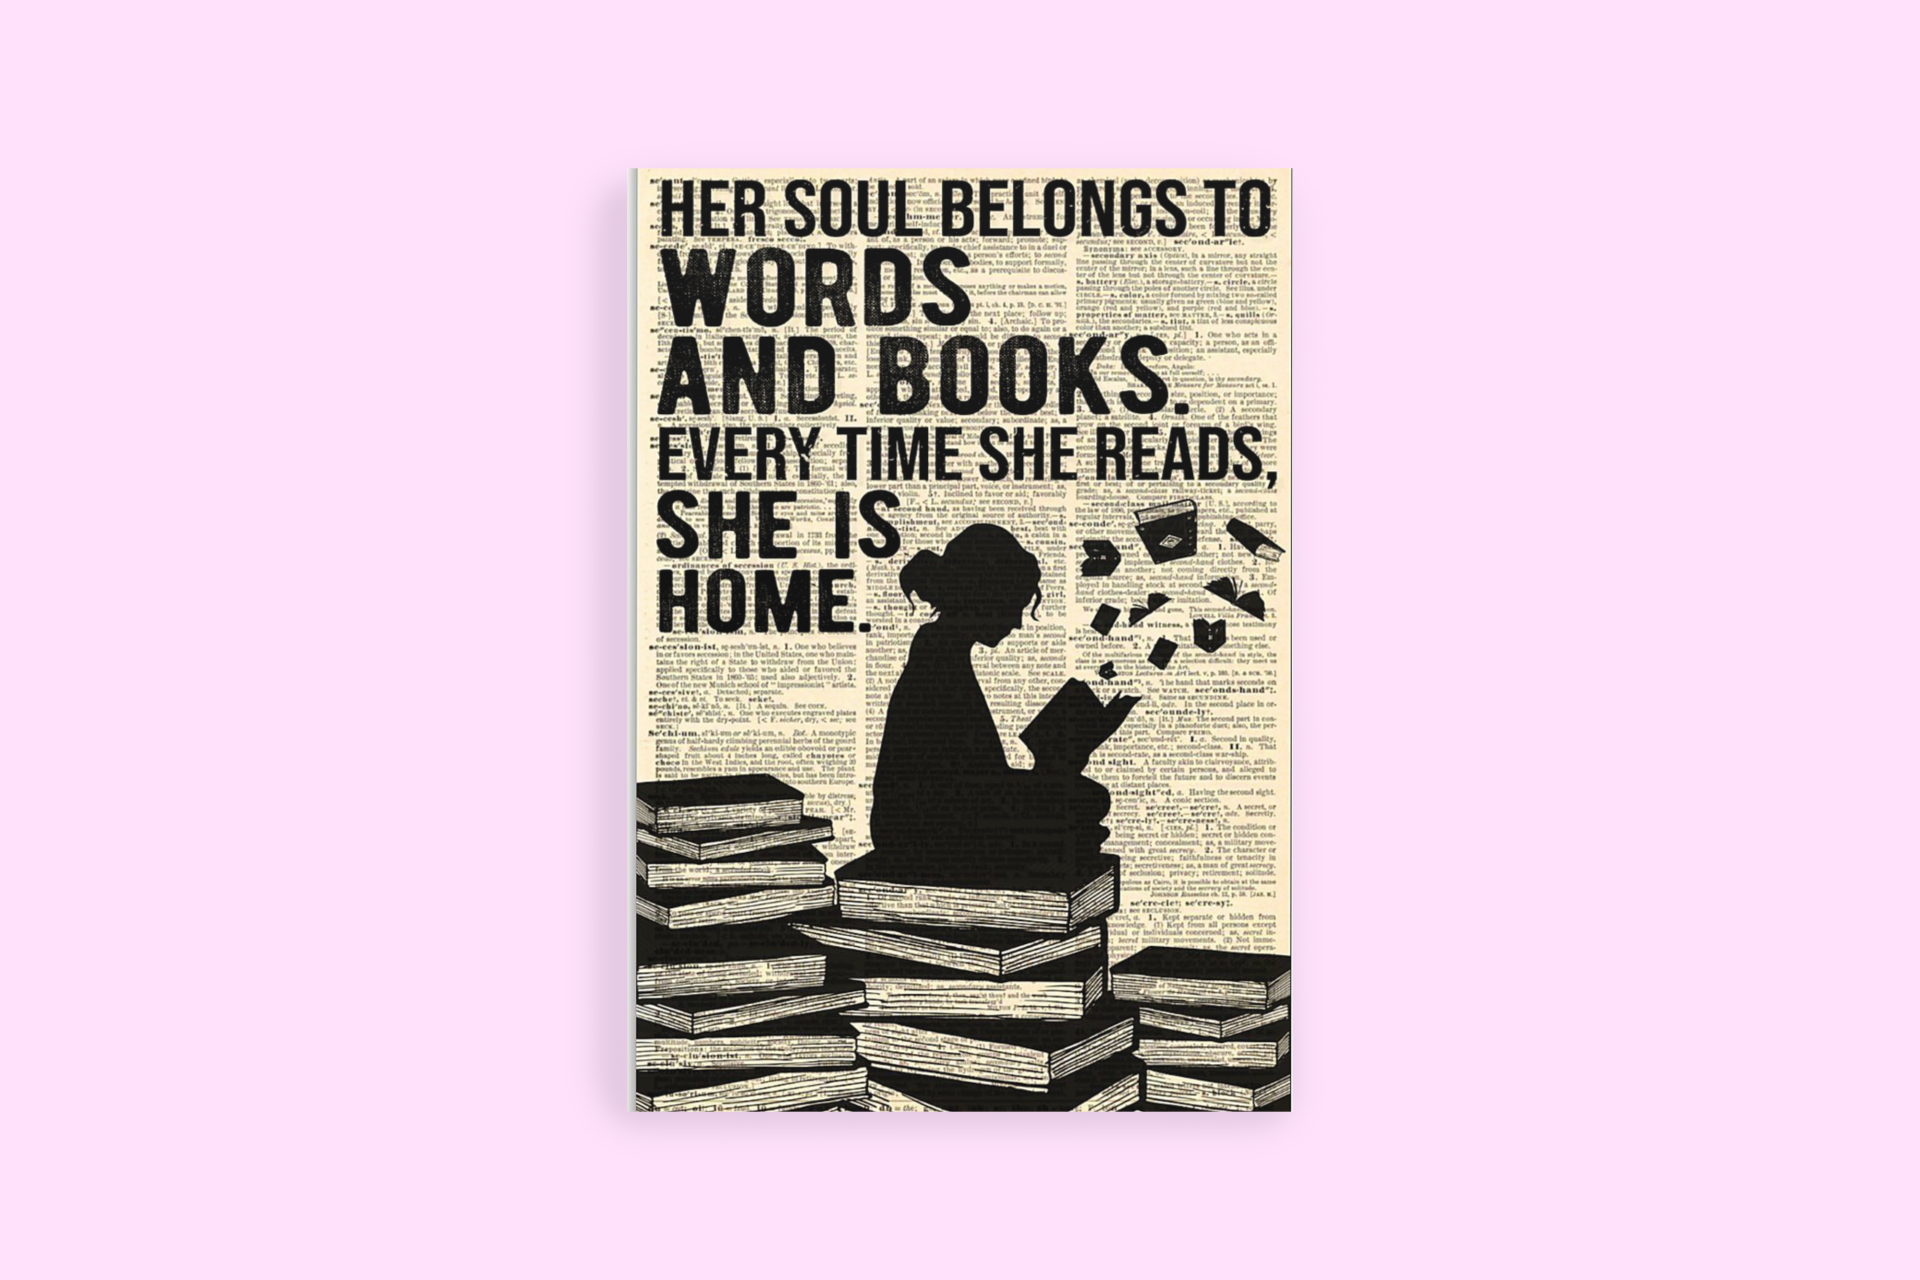 Reading her soul belongs to words and books poster